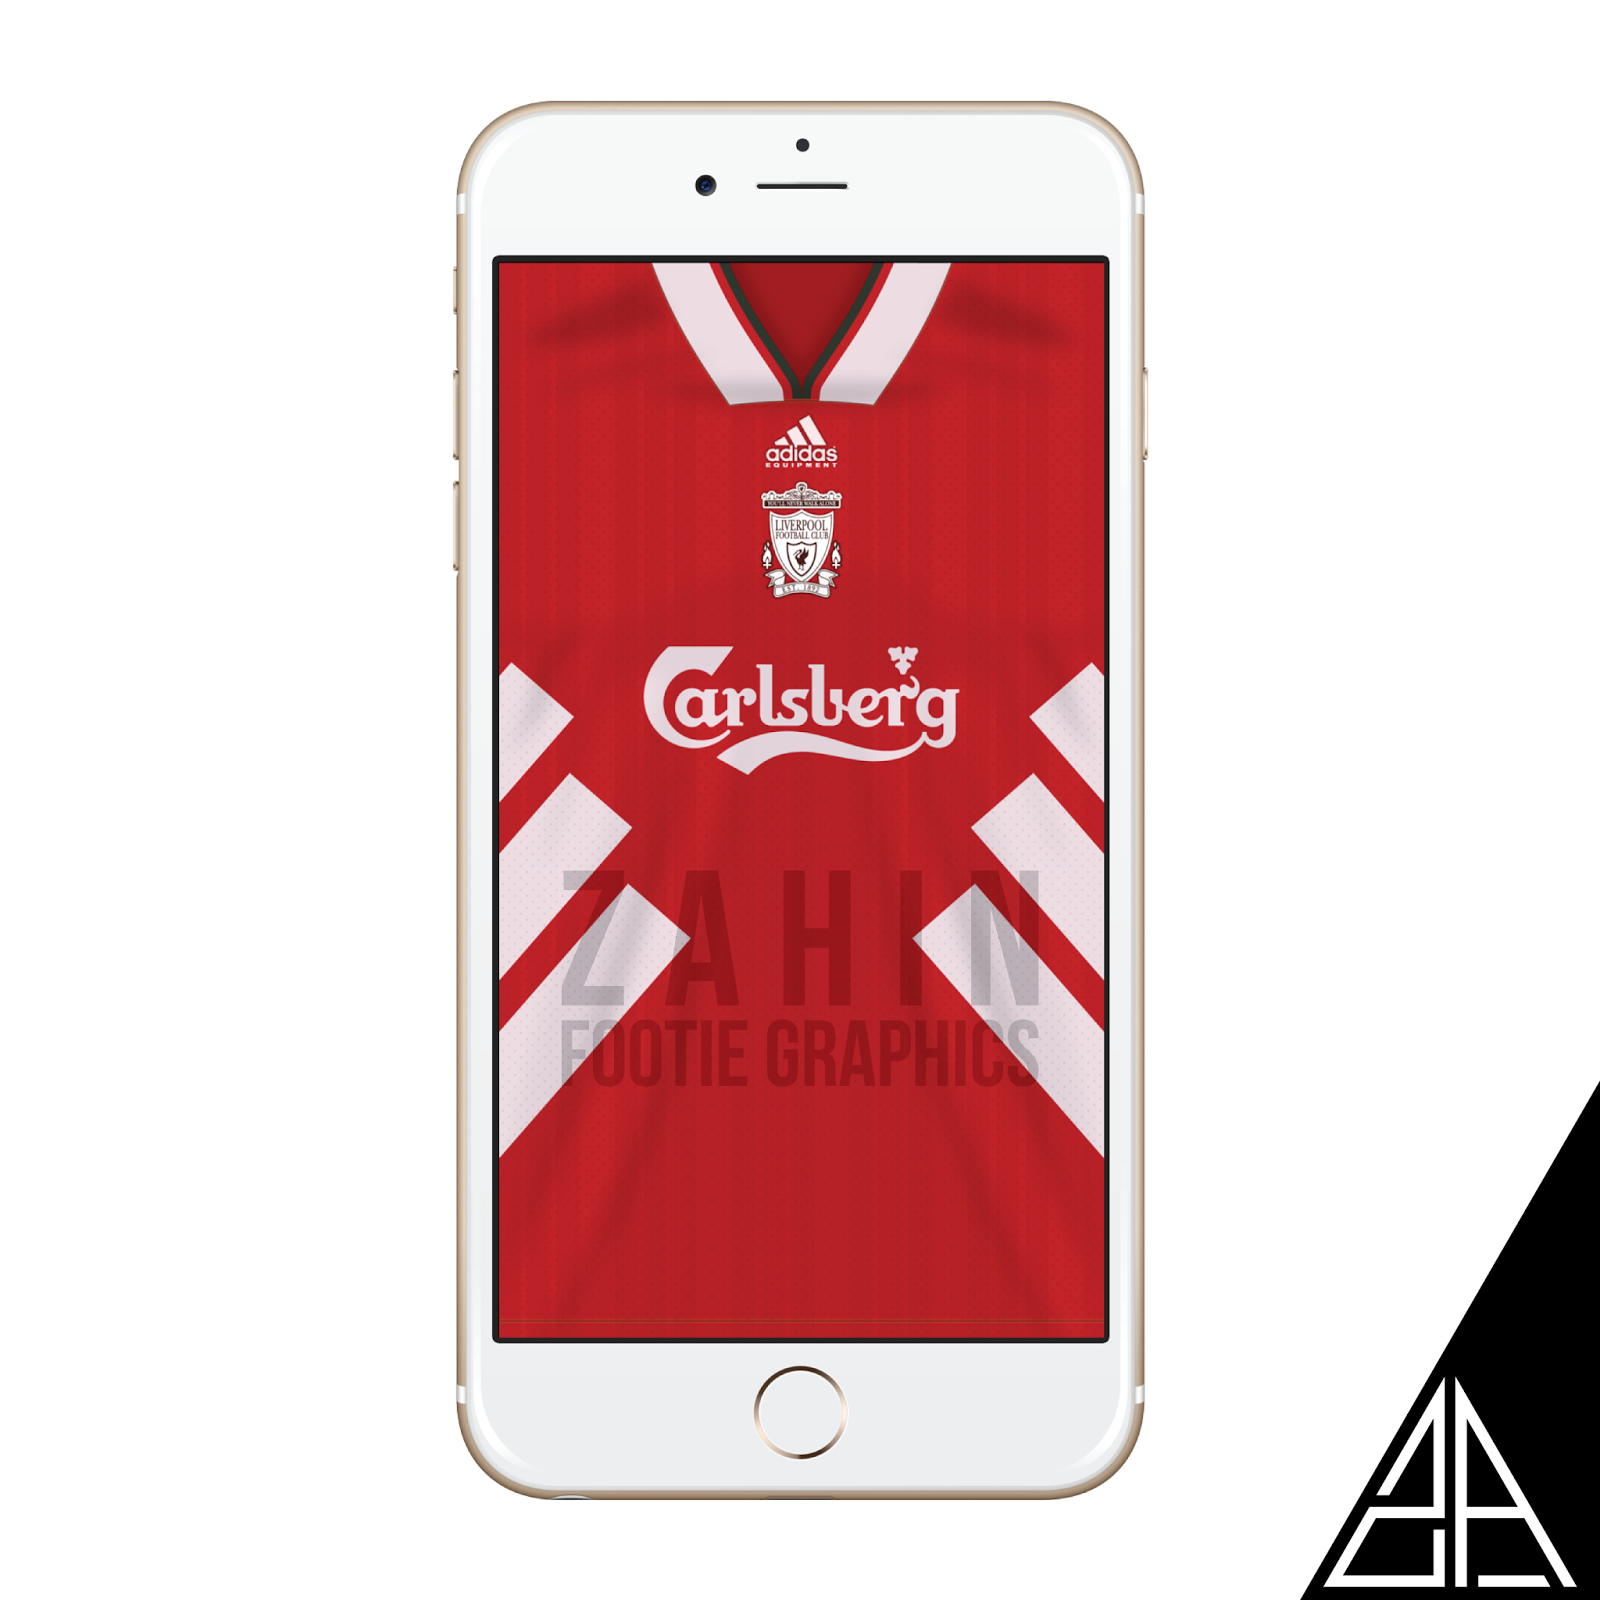 e5cc15a4e Liverpool home kit 1993 95 wallpaper for your iPhone   Android.